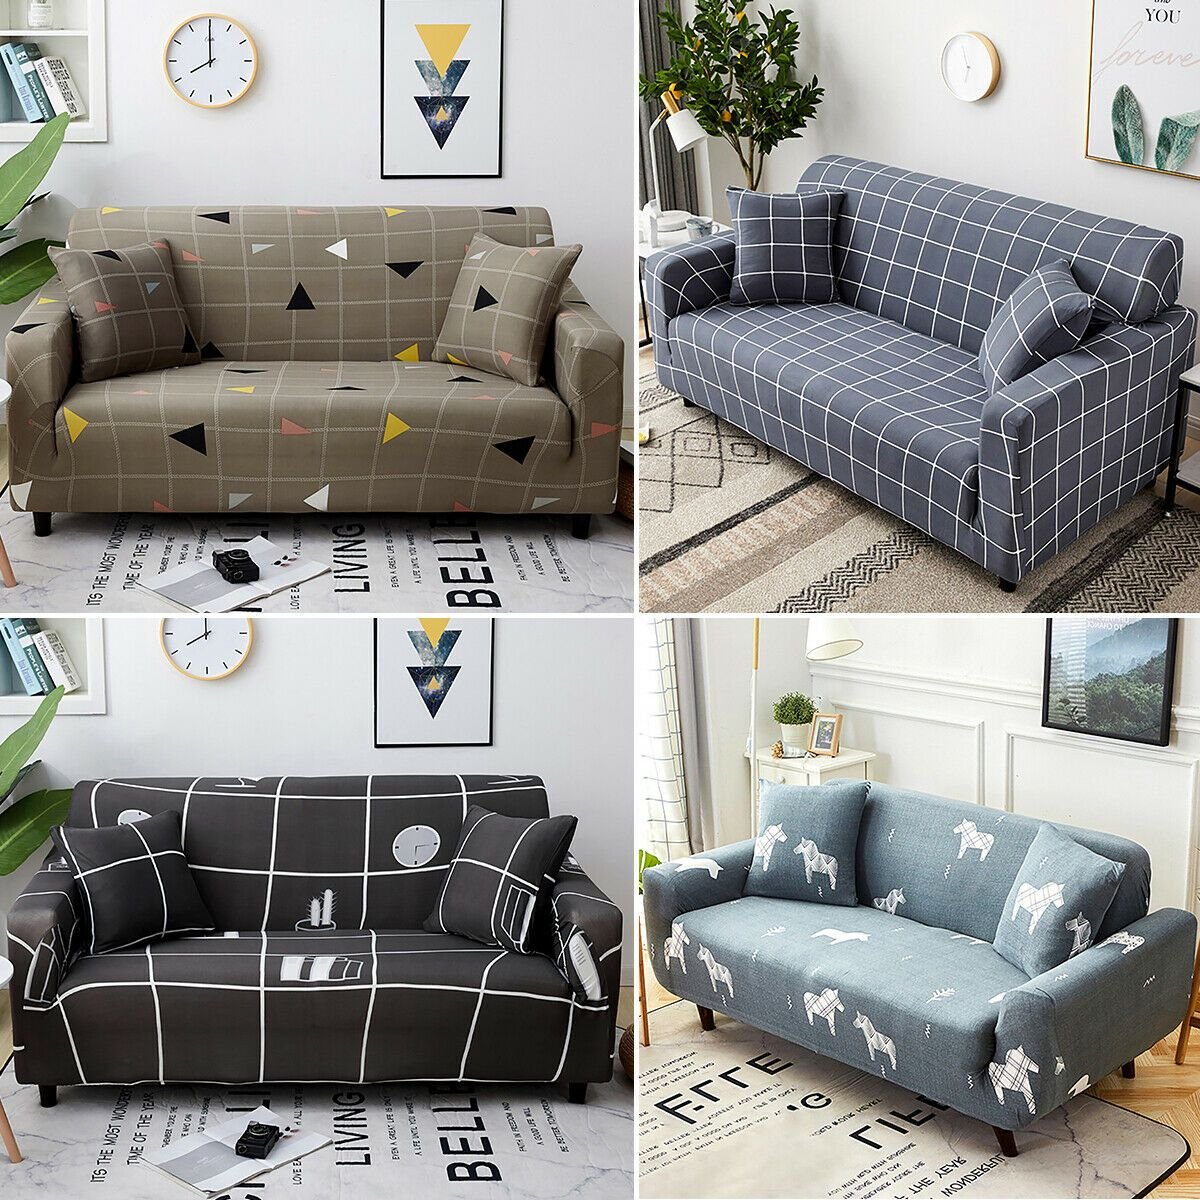 Elastic Sofa Cover Slipcover Stretch Couch Furniture Chair Protector 1234 Seats Ebay In 2020 Couch Furniture Sofa Covers Couch Covers Slipcovers